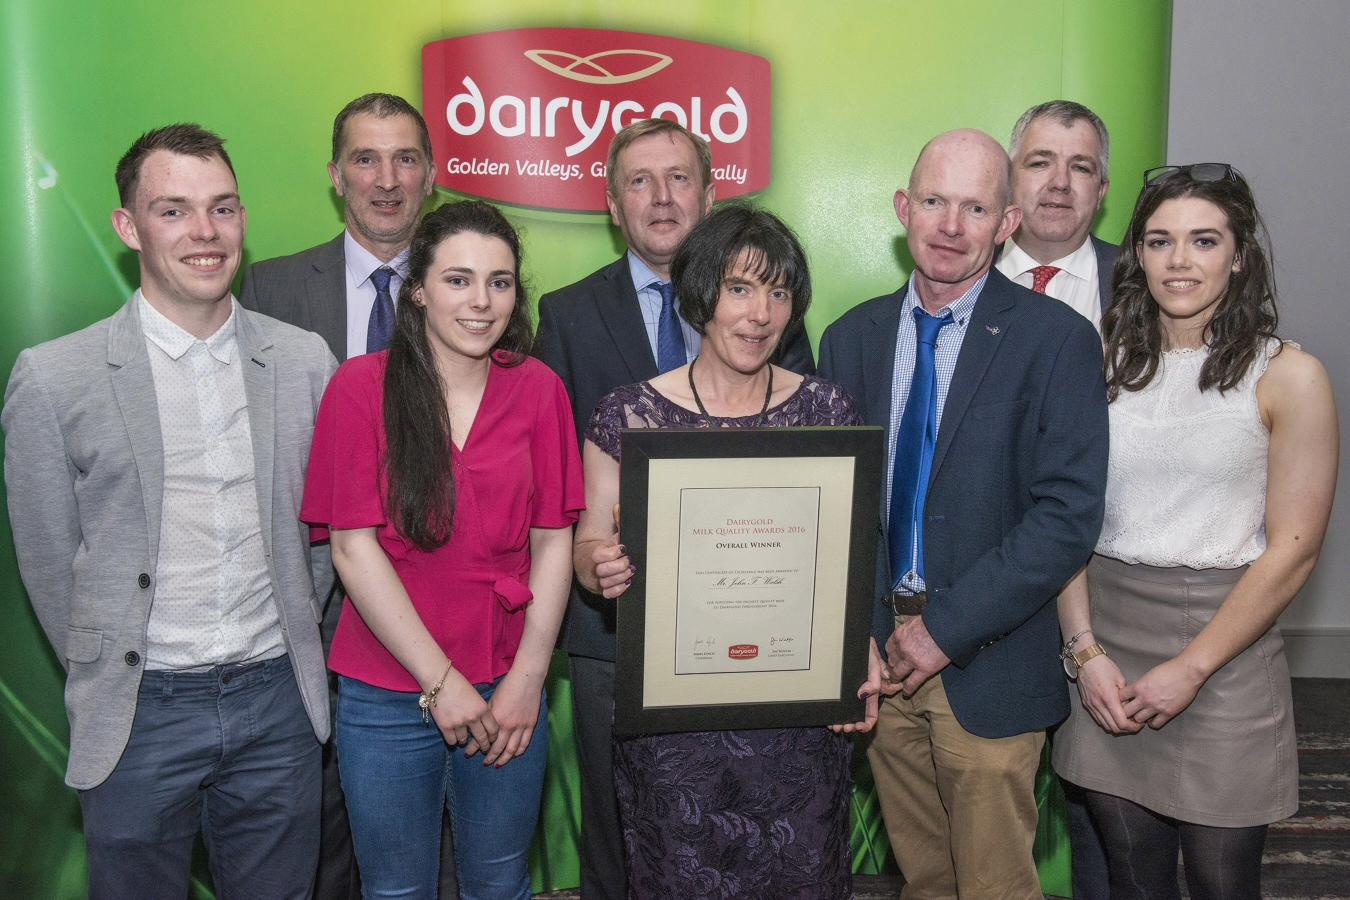 Dairygold announces overall Milk Quality Award Winner